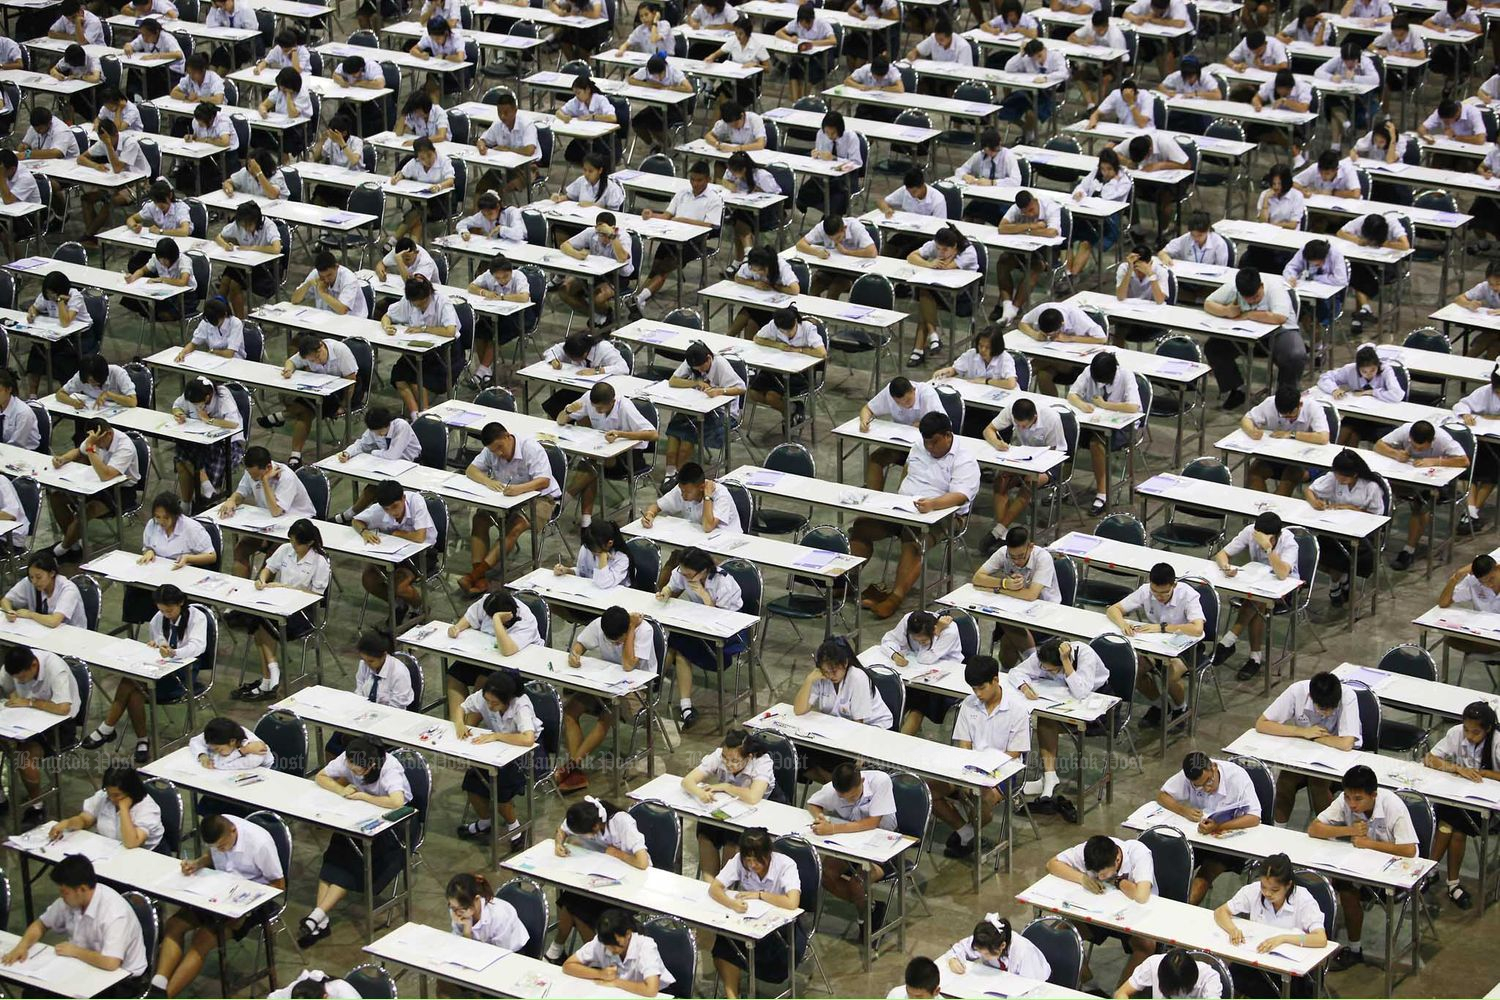 In this 2012 file photo, about 35,000 students sit for an exam in a bid to gain direct admission to Srinakharinwirot University. The test was held at at Muang Thong Thani's Impact Arena in Nonthaburi province. (Bangkok Post file photo)